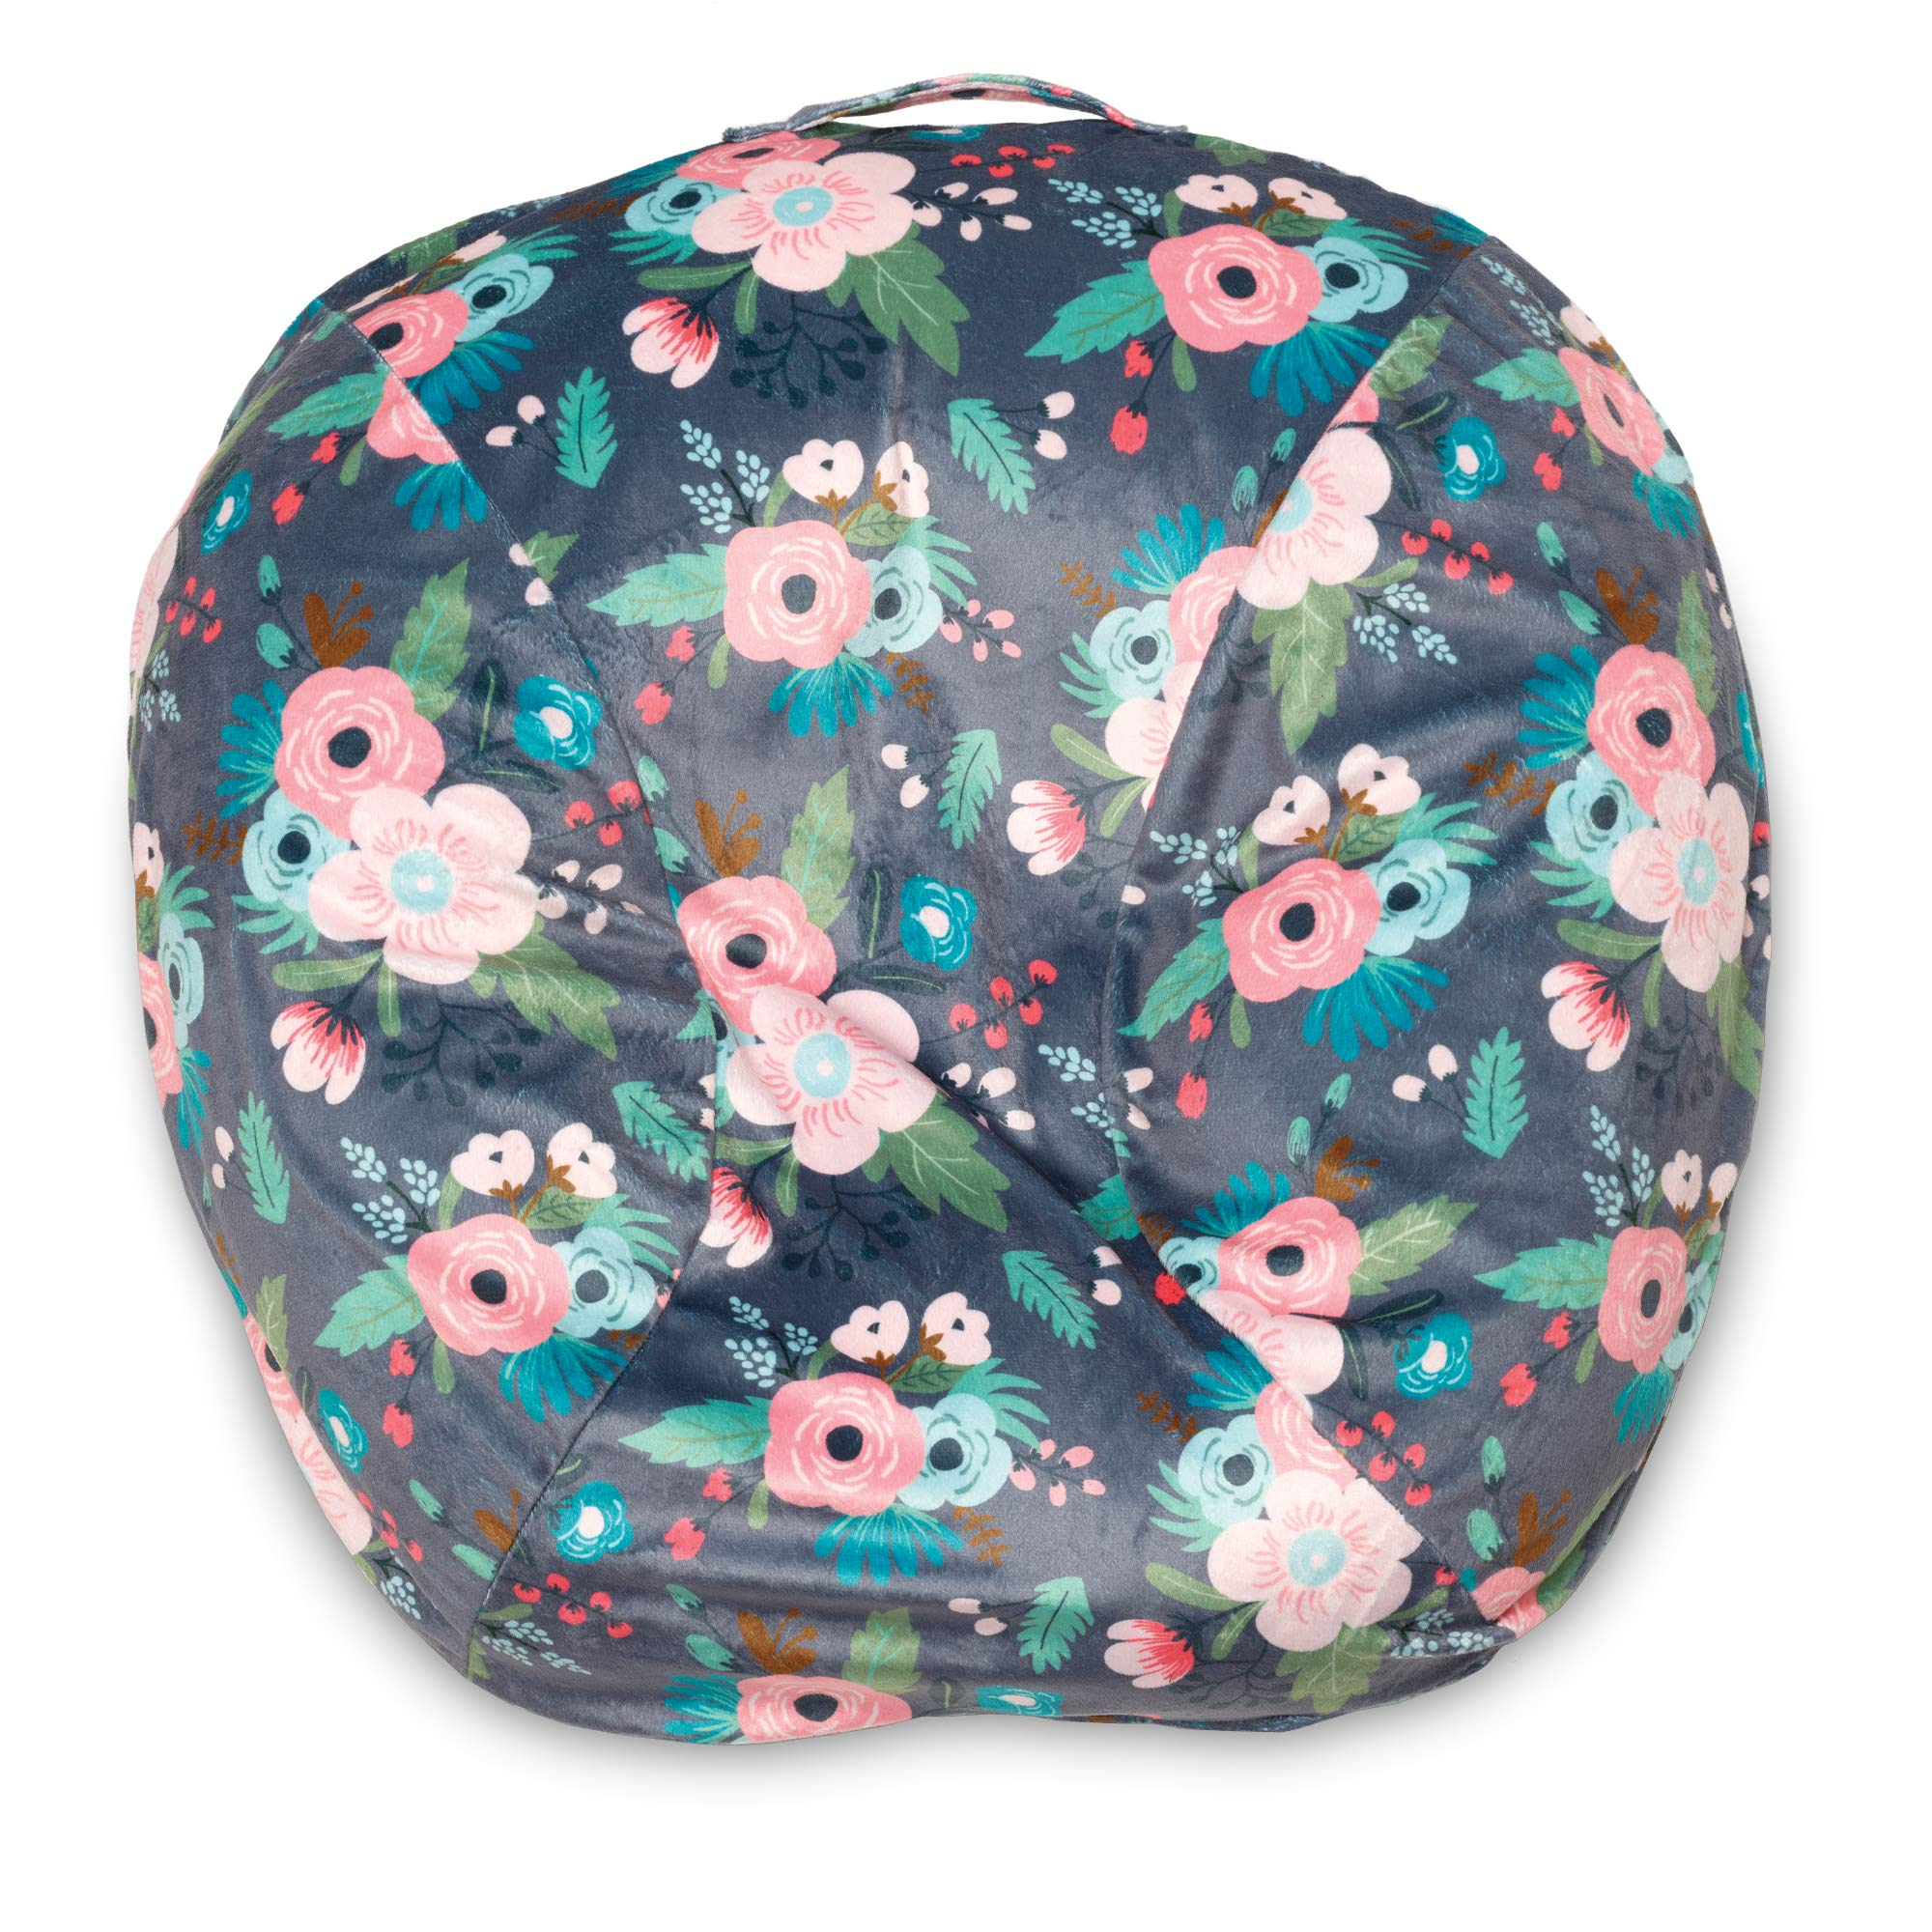 Boppy Boutique Newborn Lounger Cover, Gray Floral by Boppy